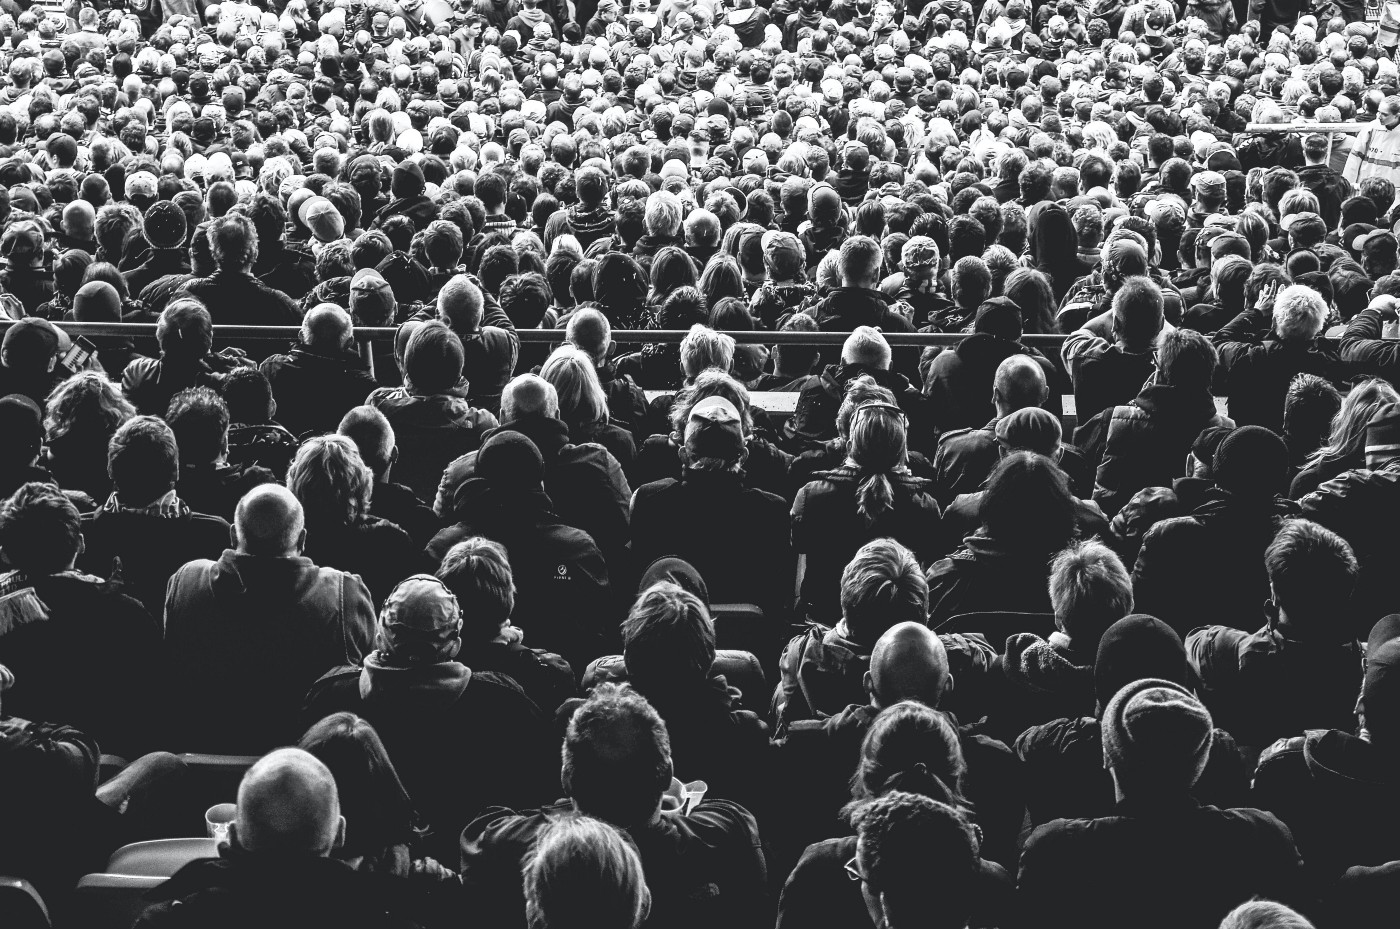 An audience facing away from the viewer, seen in black-and-white.